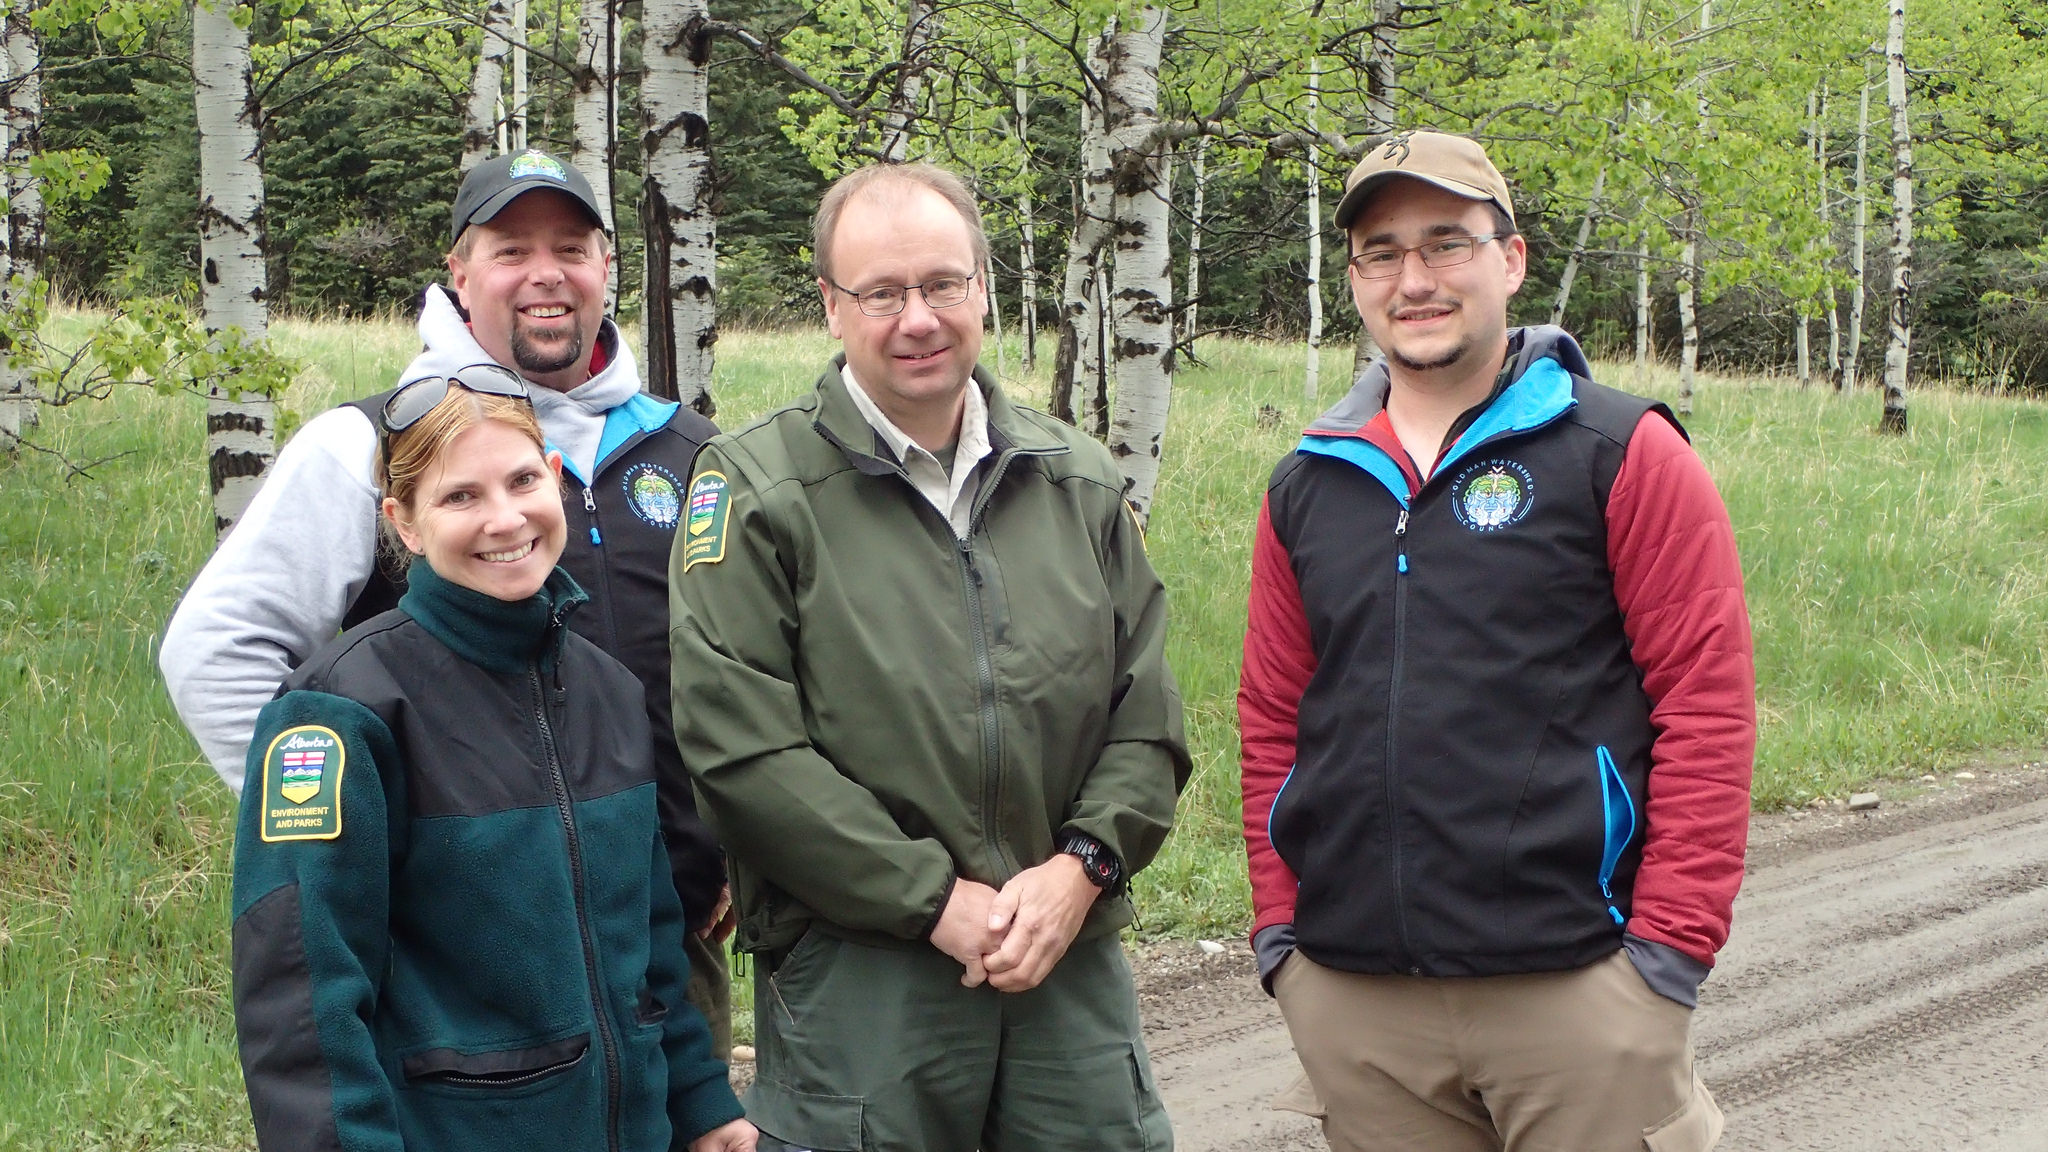 Rob and Thomas caught up with Mike Taje and Michelle Keohane from Alberta Environment and Parks